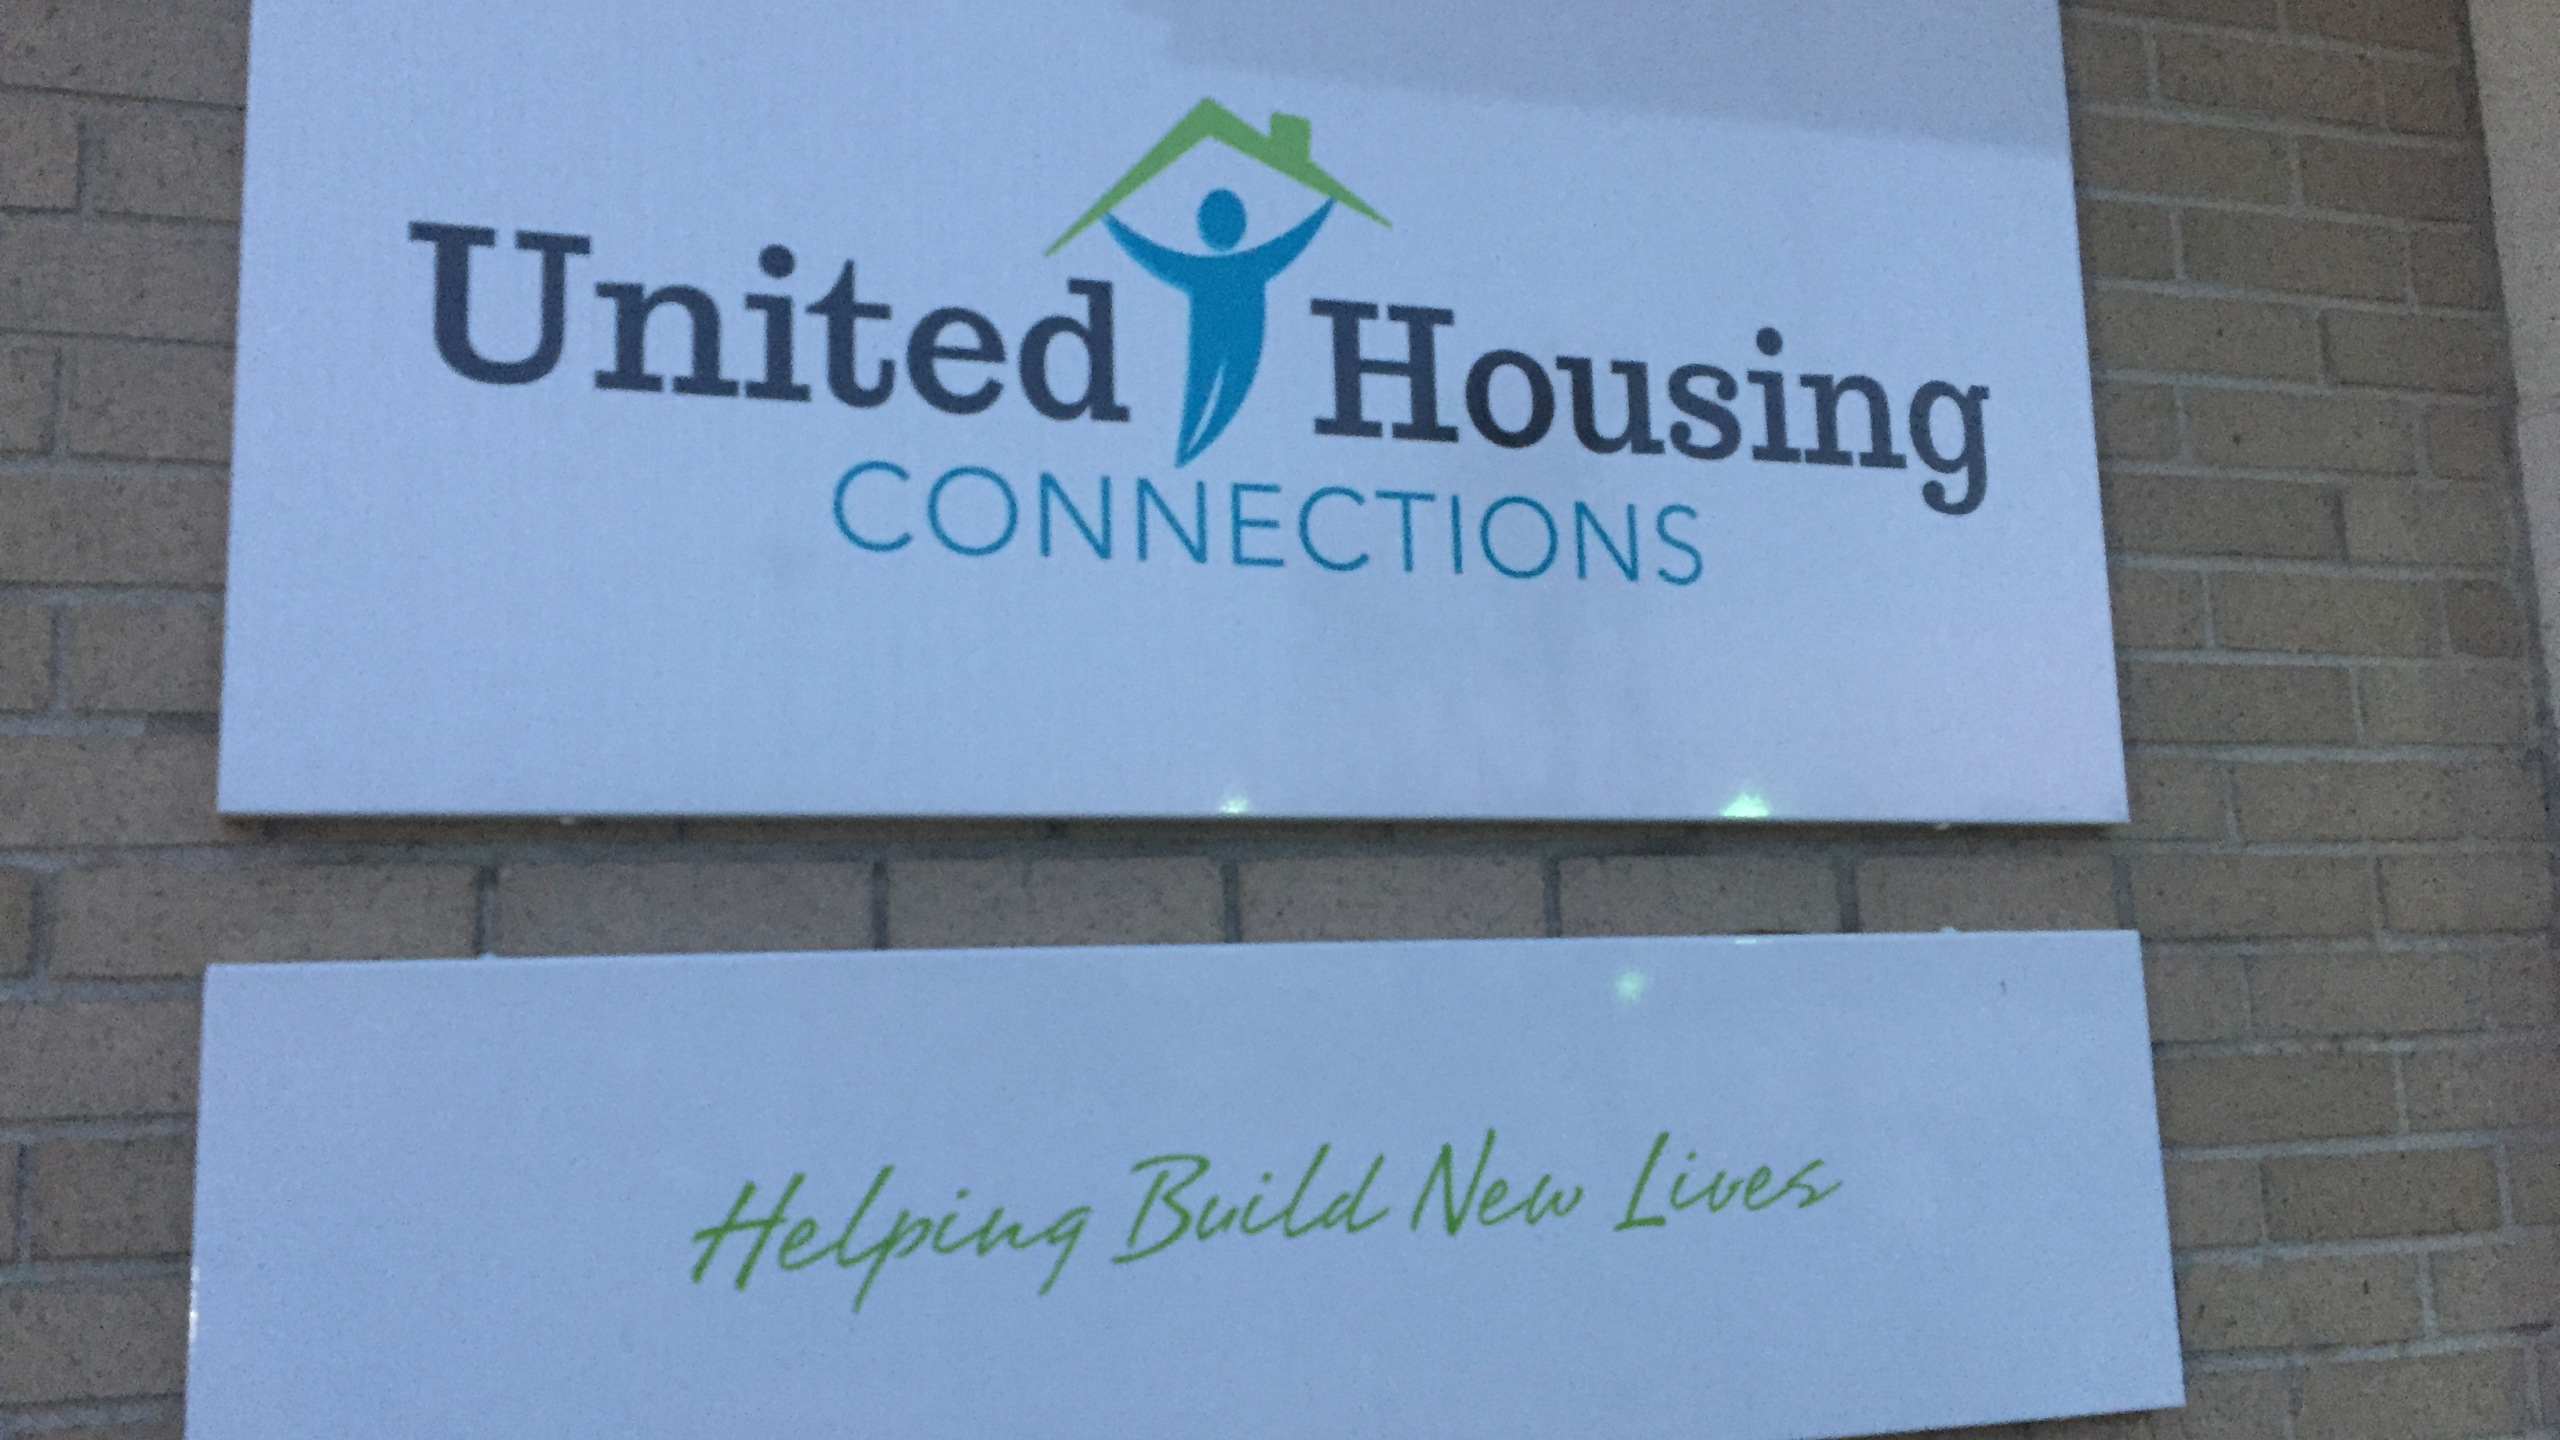 united-housing-connections_293714